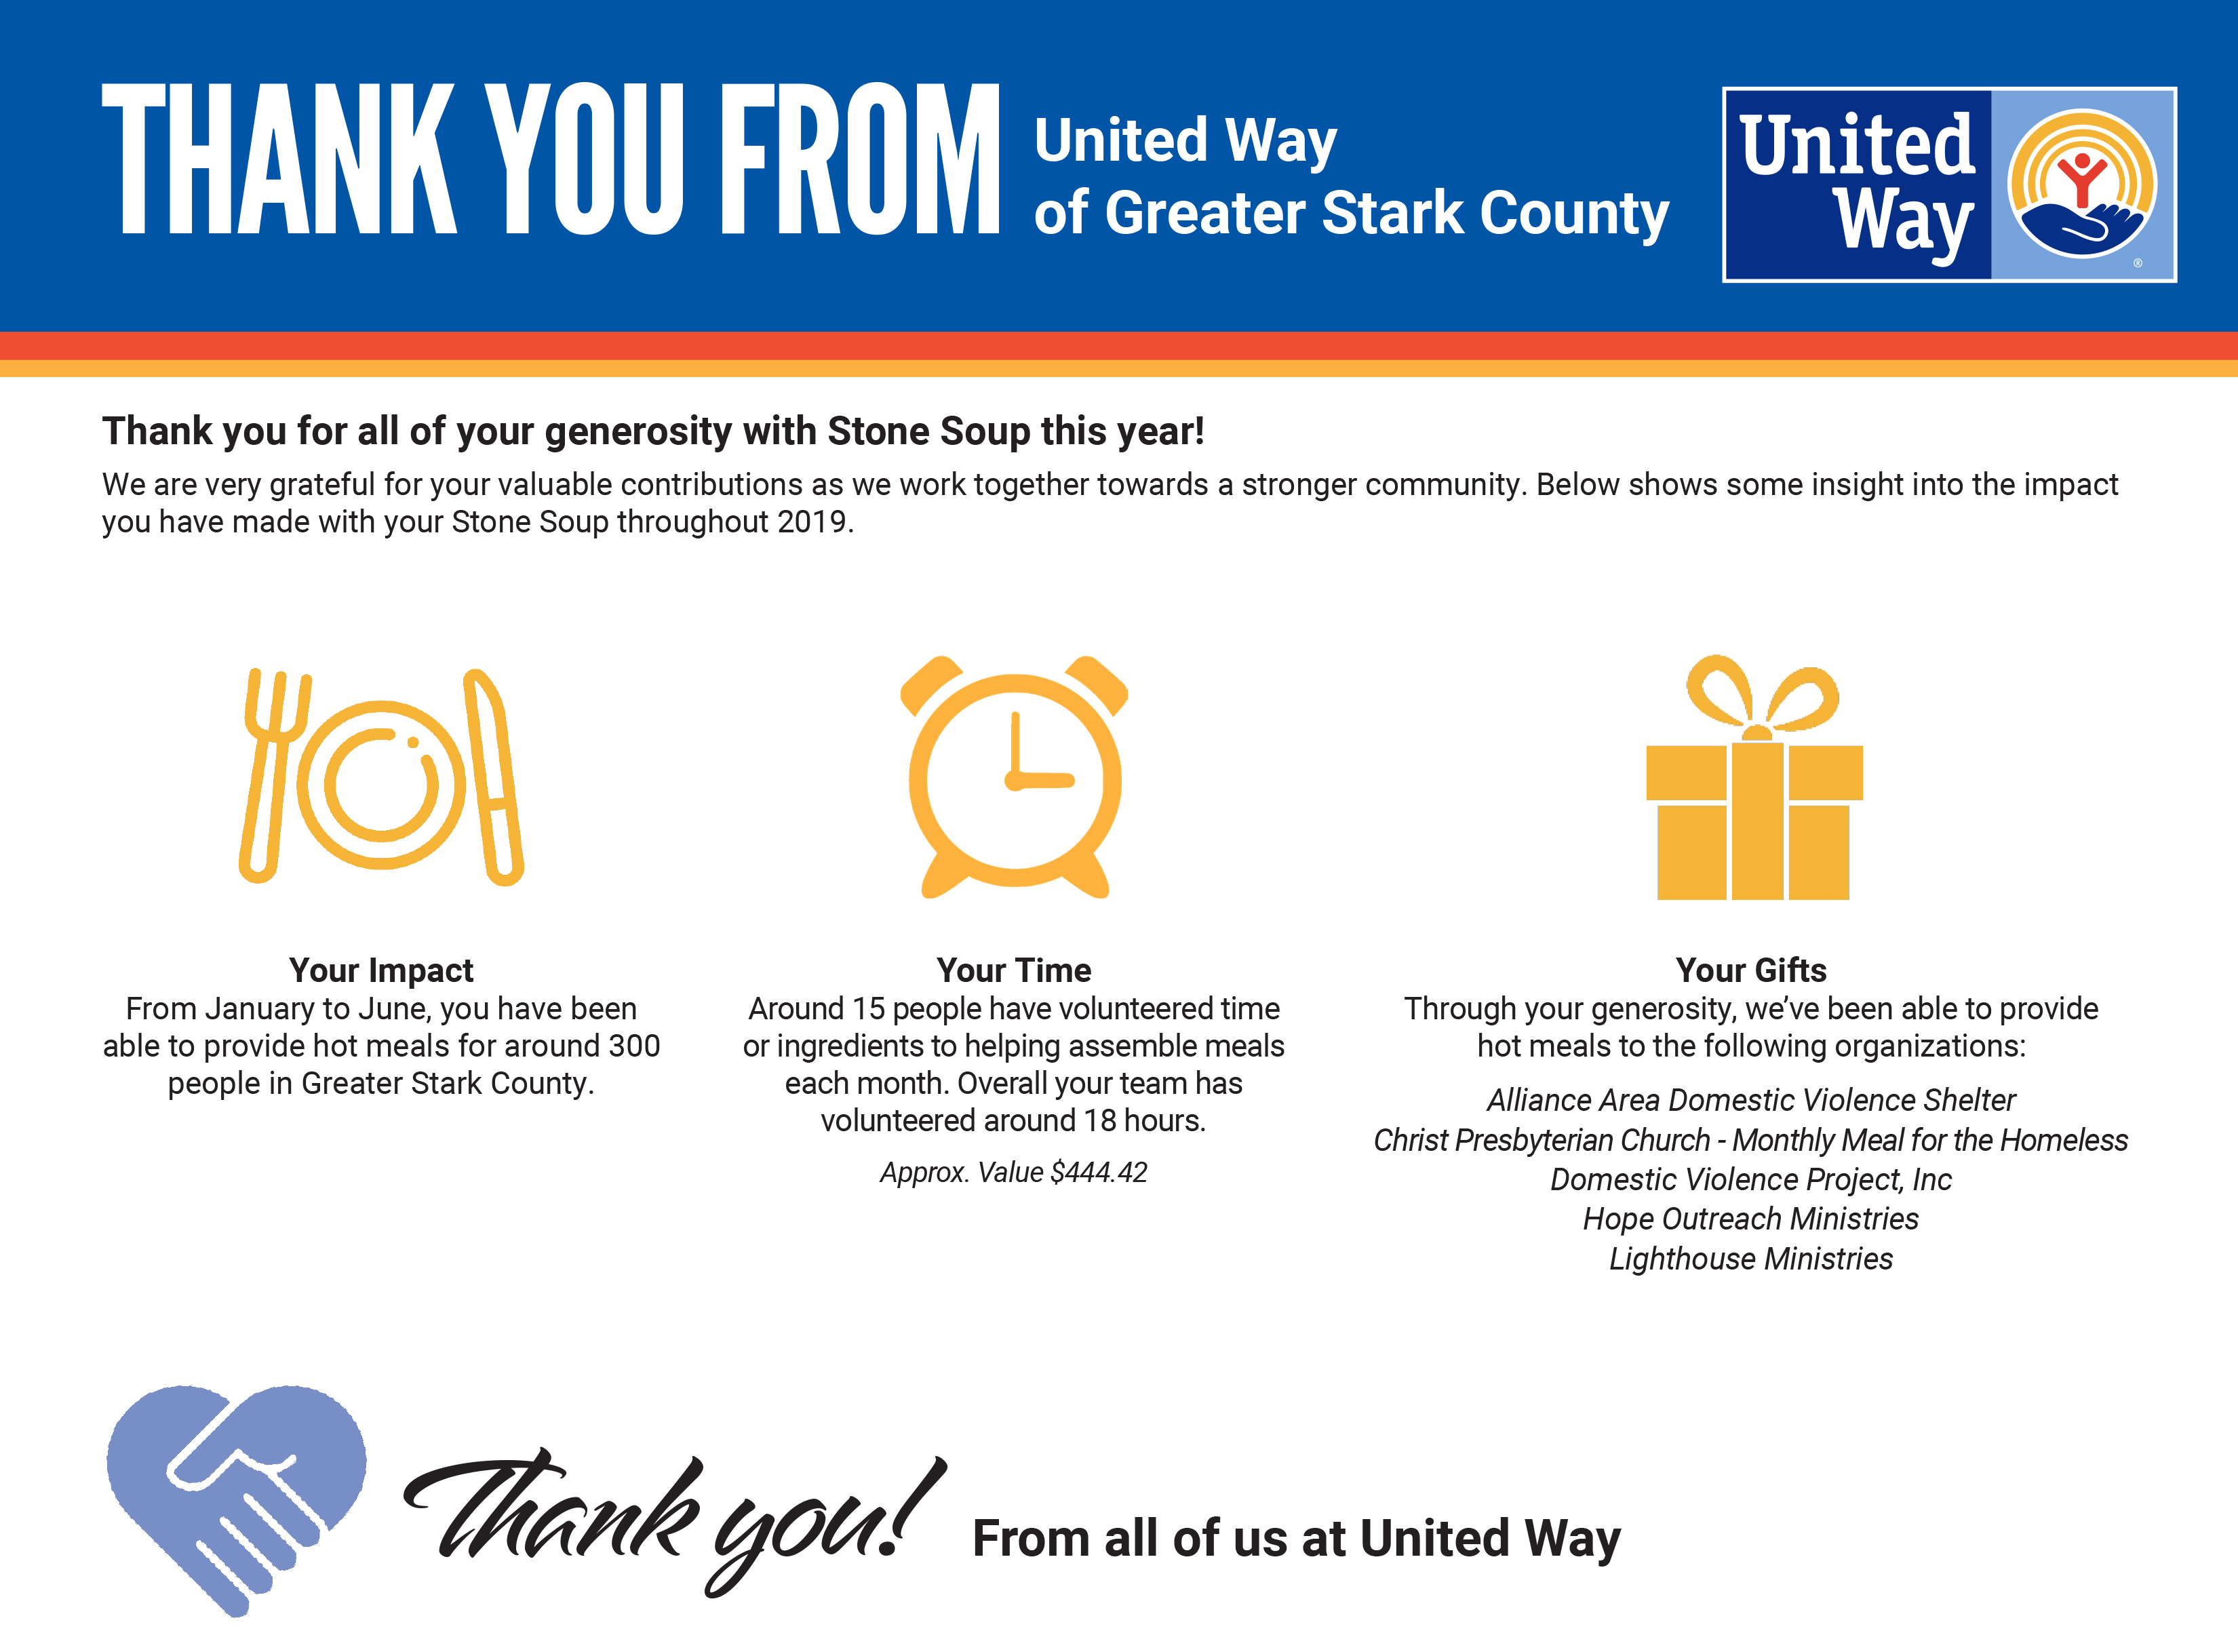 Rice's Impact with United Way Stone Soup